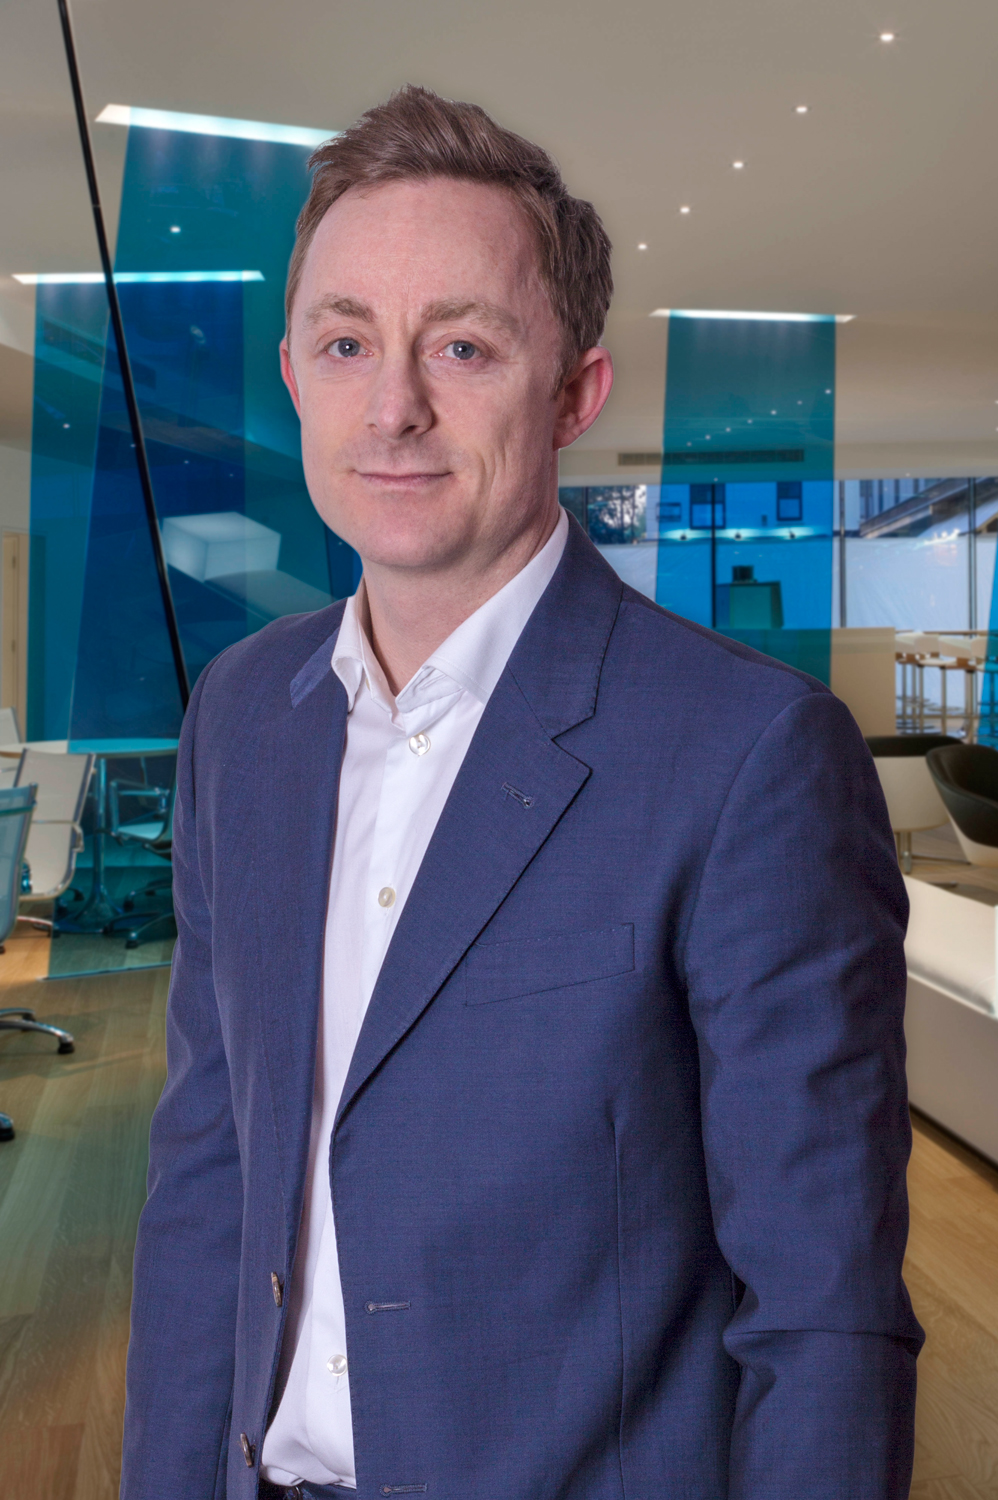 Image Result For Zenithoptimedia Appoints New Chief Digital Officer